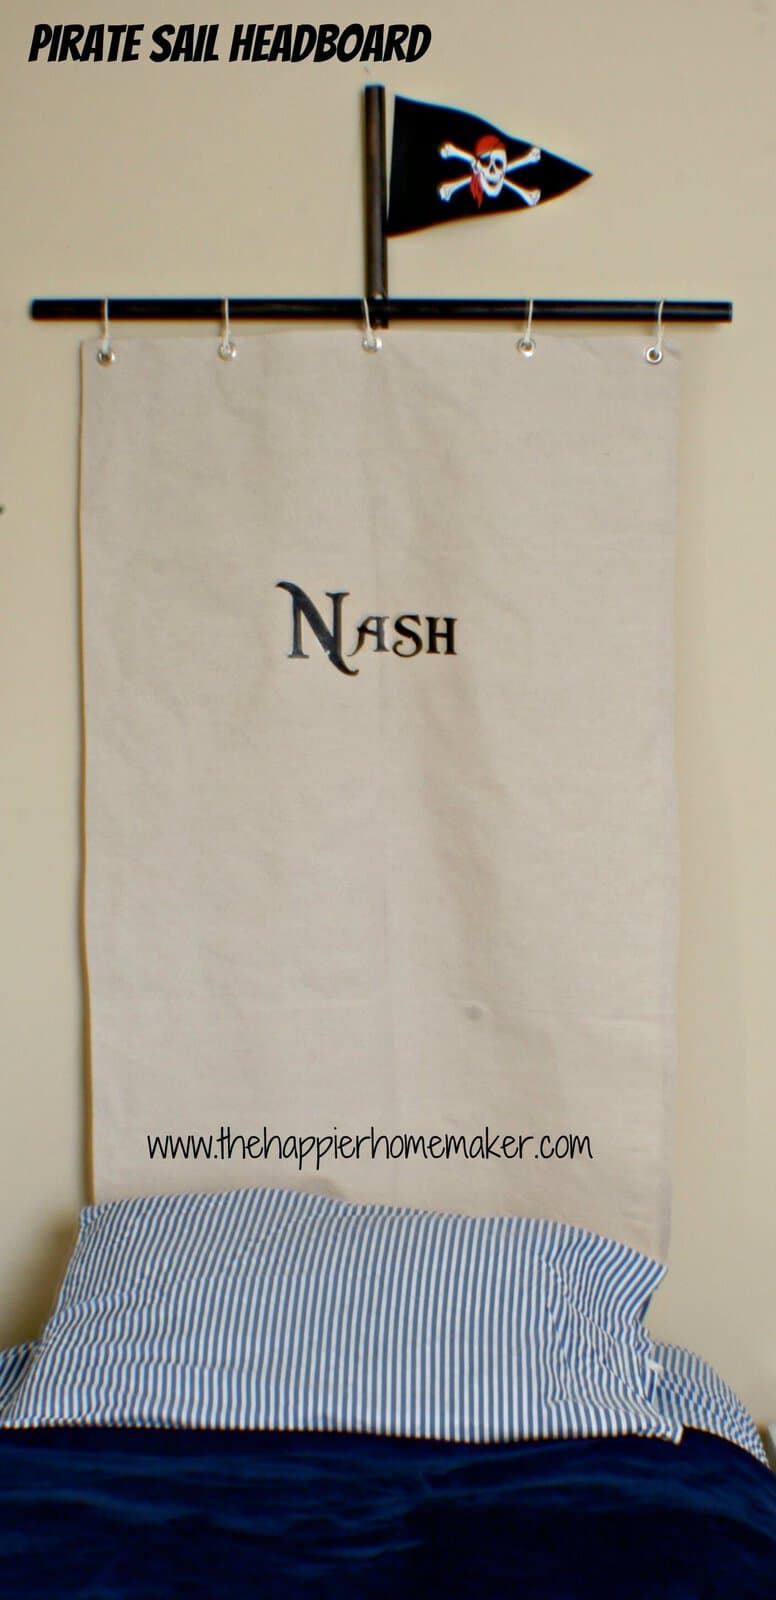 """A pirate sail headboard with the name """"Nash"""" on it"""